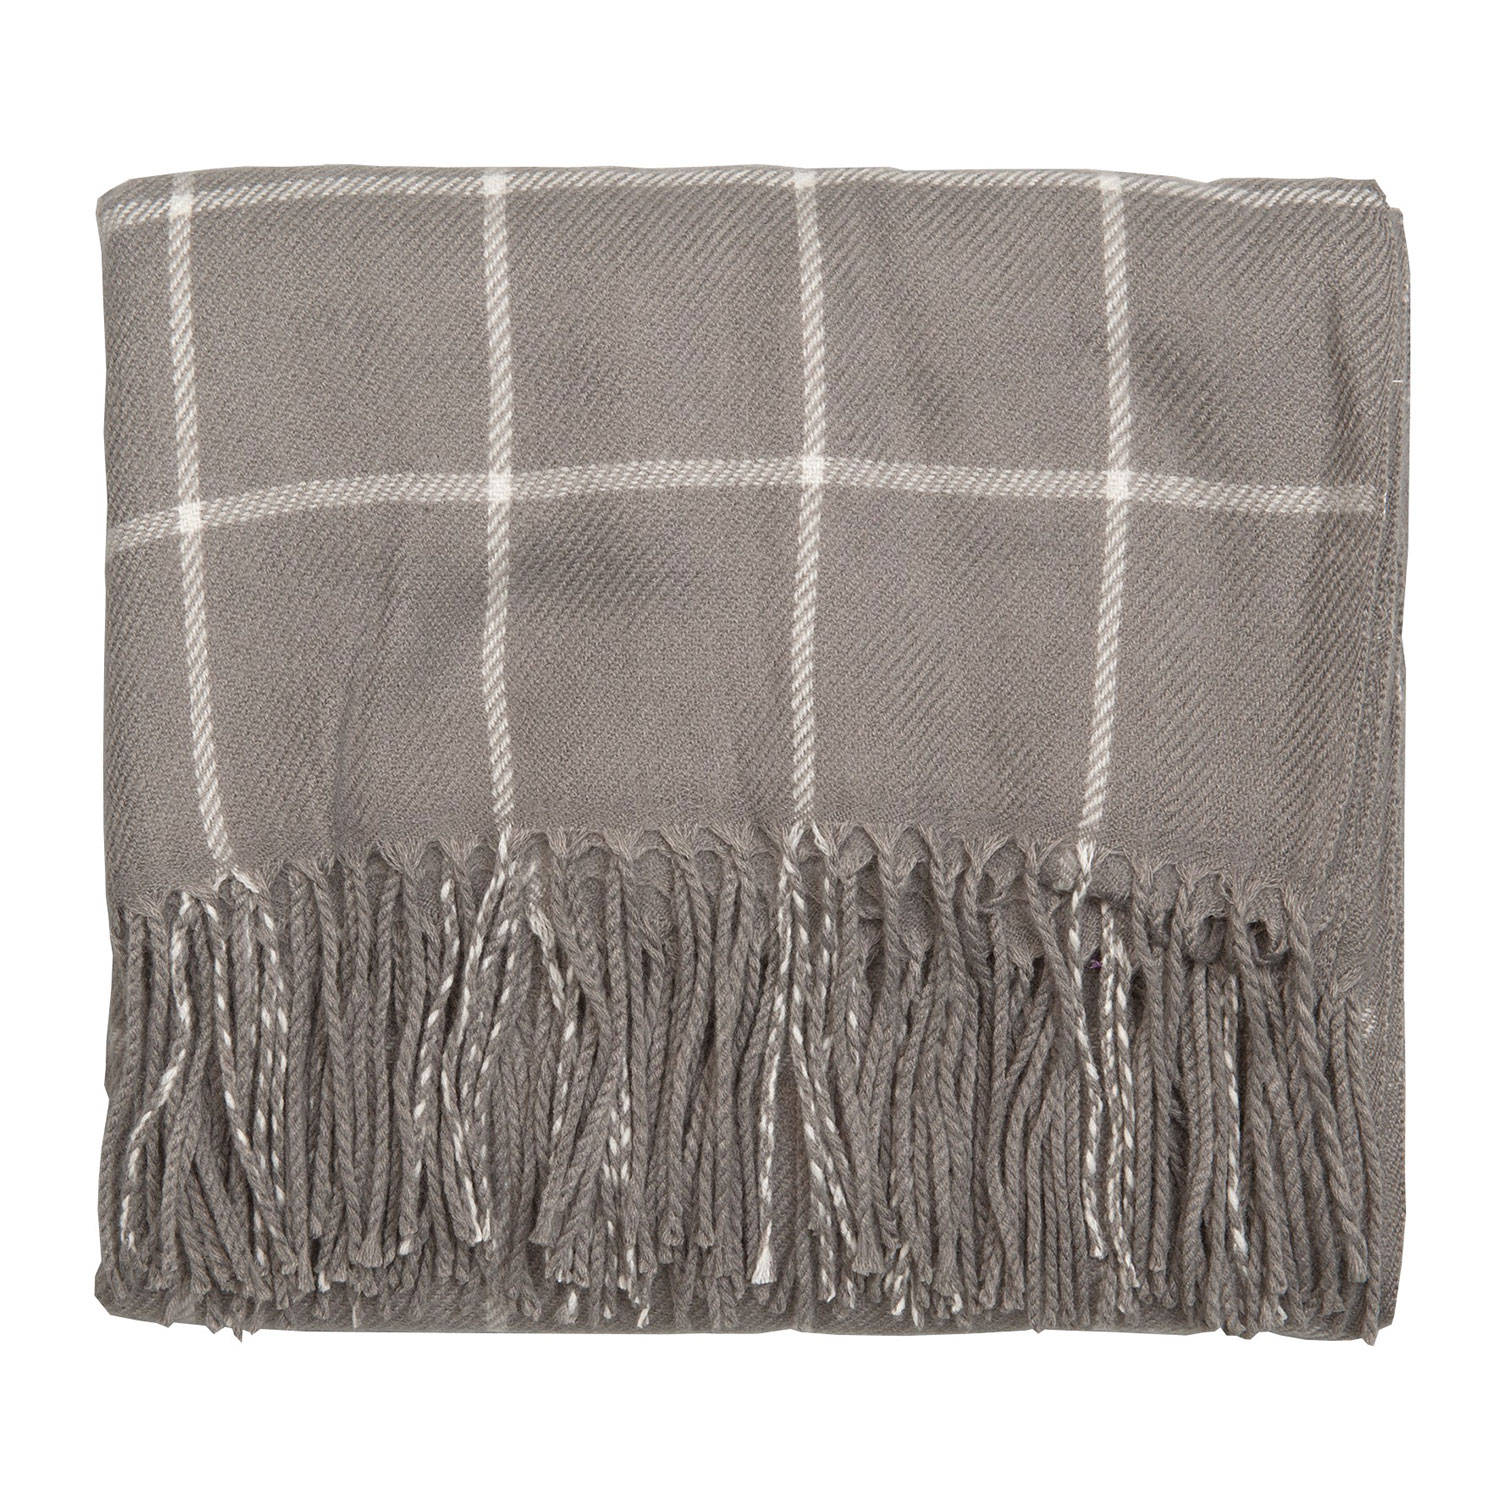 Clayre & eef plaid 130x150 cm - grijs, wit - polyester, 100% acryl